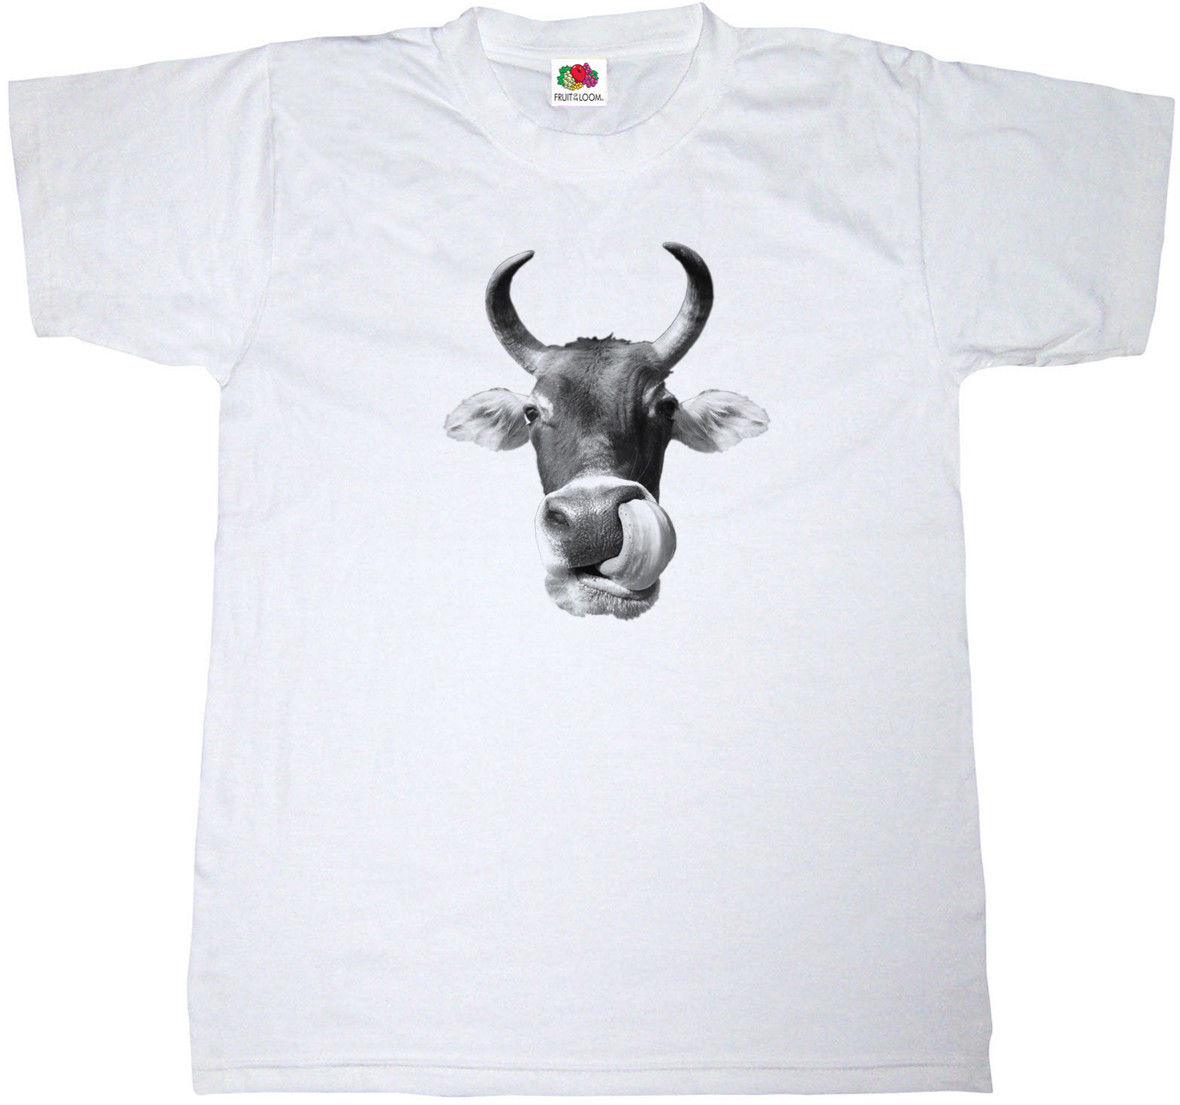 COW LICKING ITS OWN NOSE FUNNY ALTERNATIVE T-SHIRT 100% COTTON RETRO T SHIRT New Shirts Funny Tops Tee Unisex